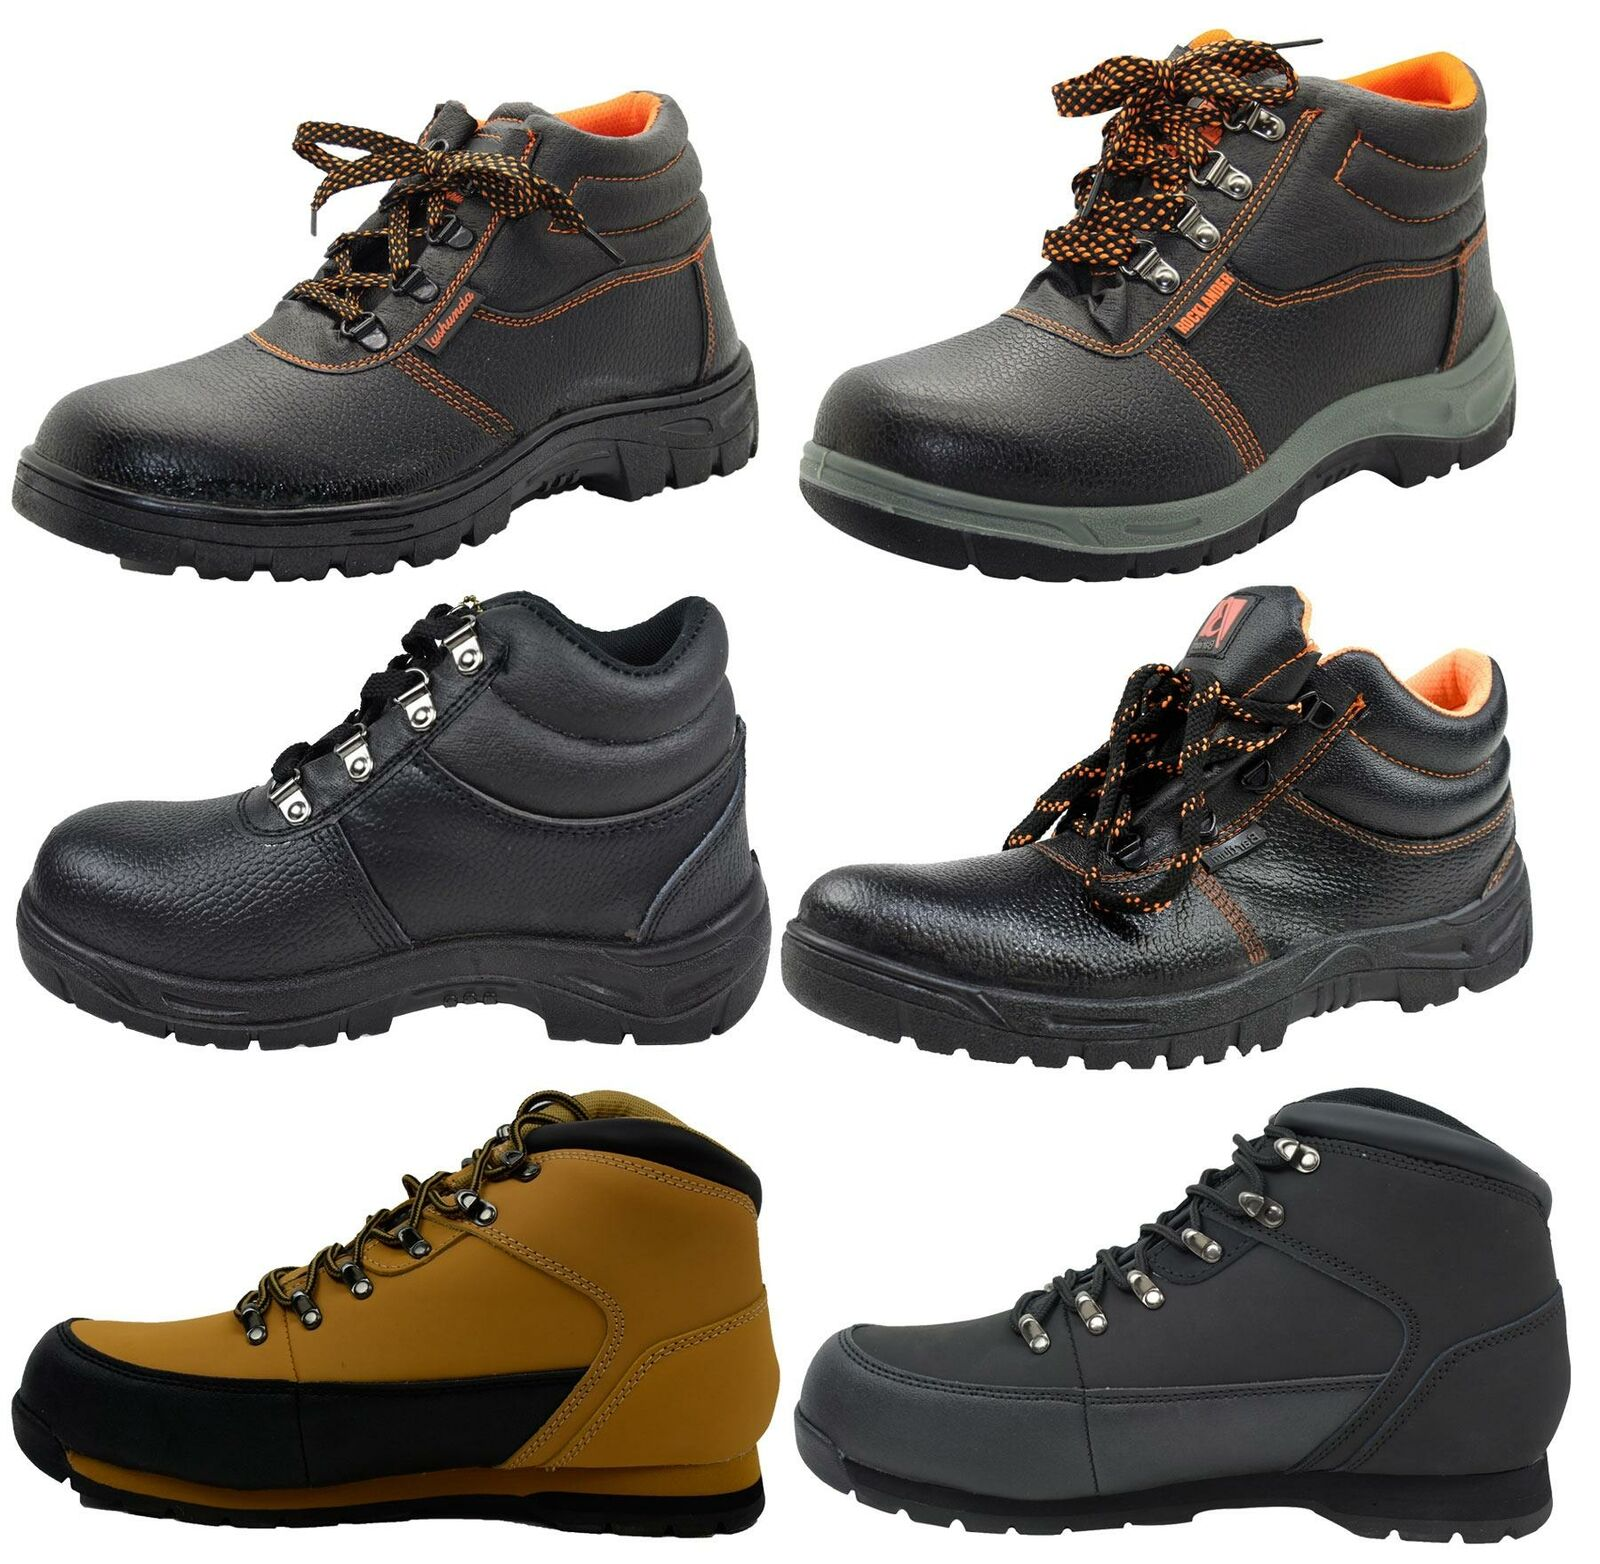 New Mens Safety High Top Work Steel Toe Cap Leather Oil Resistant Boots Shoes